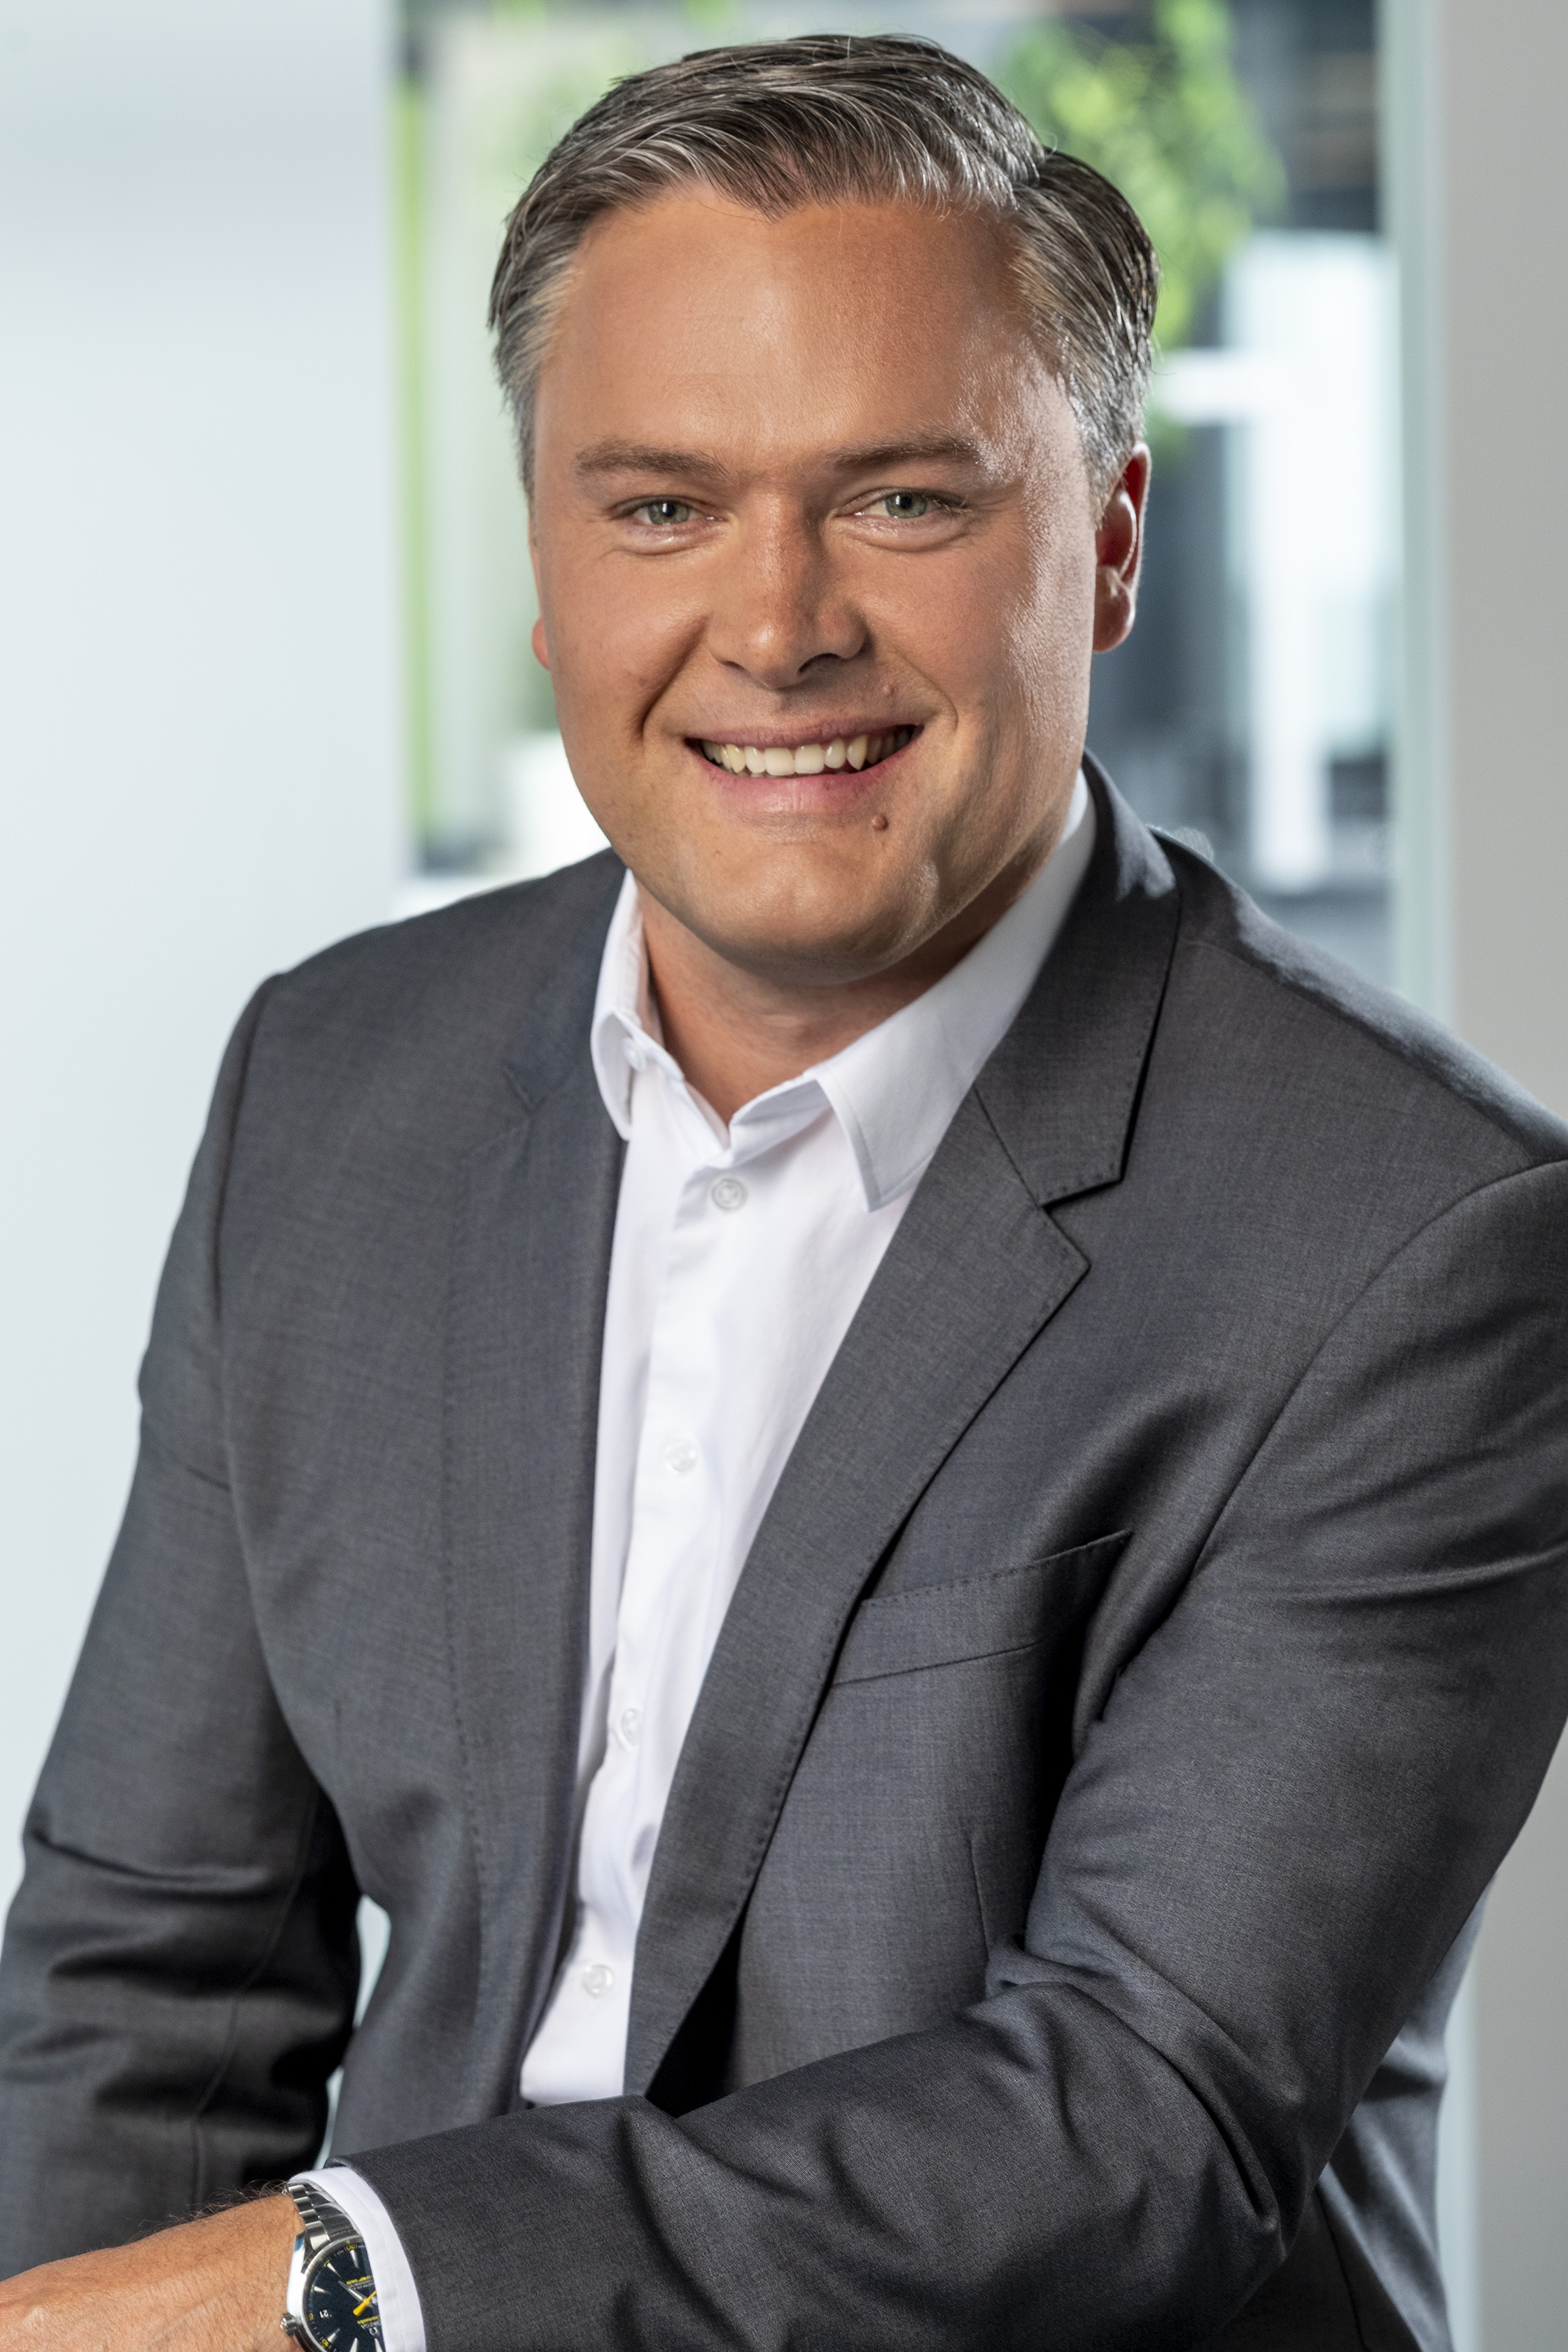 Philipp J. Jacke, Managing Director